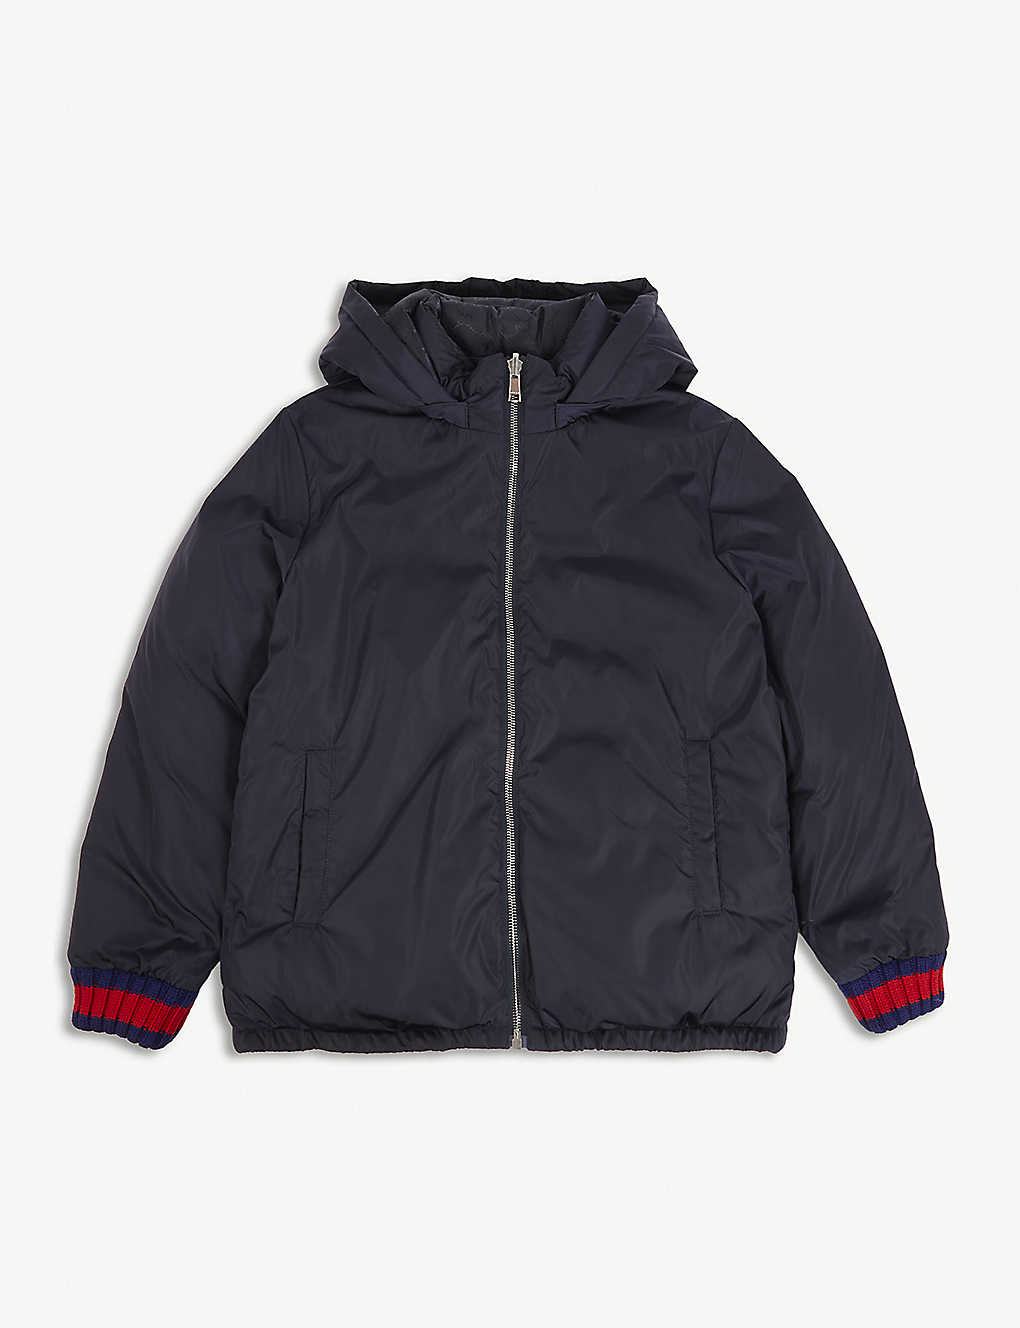 348b7119e14f7 GUCCI - Reversible  GG  jacquard quilted jacket 4-12 years ...